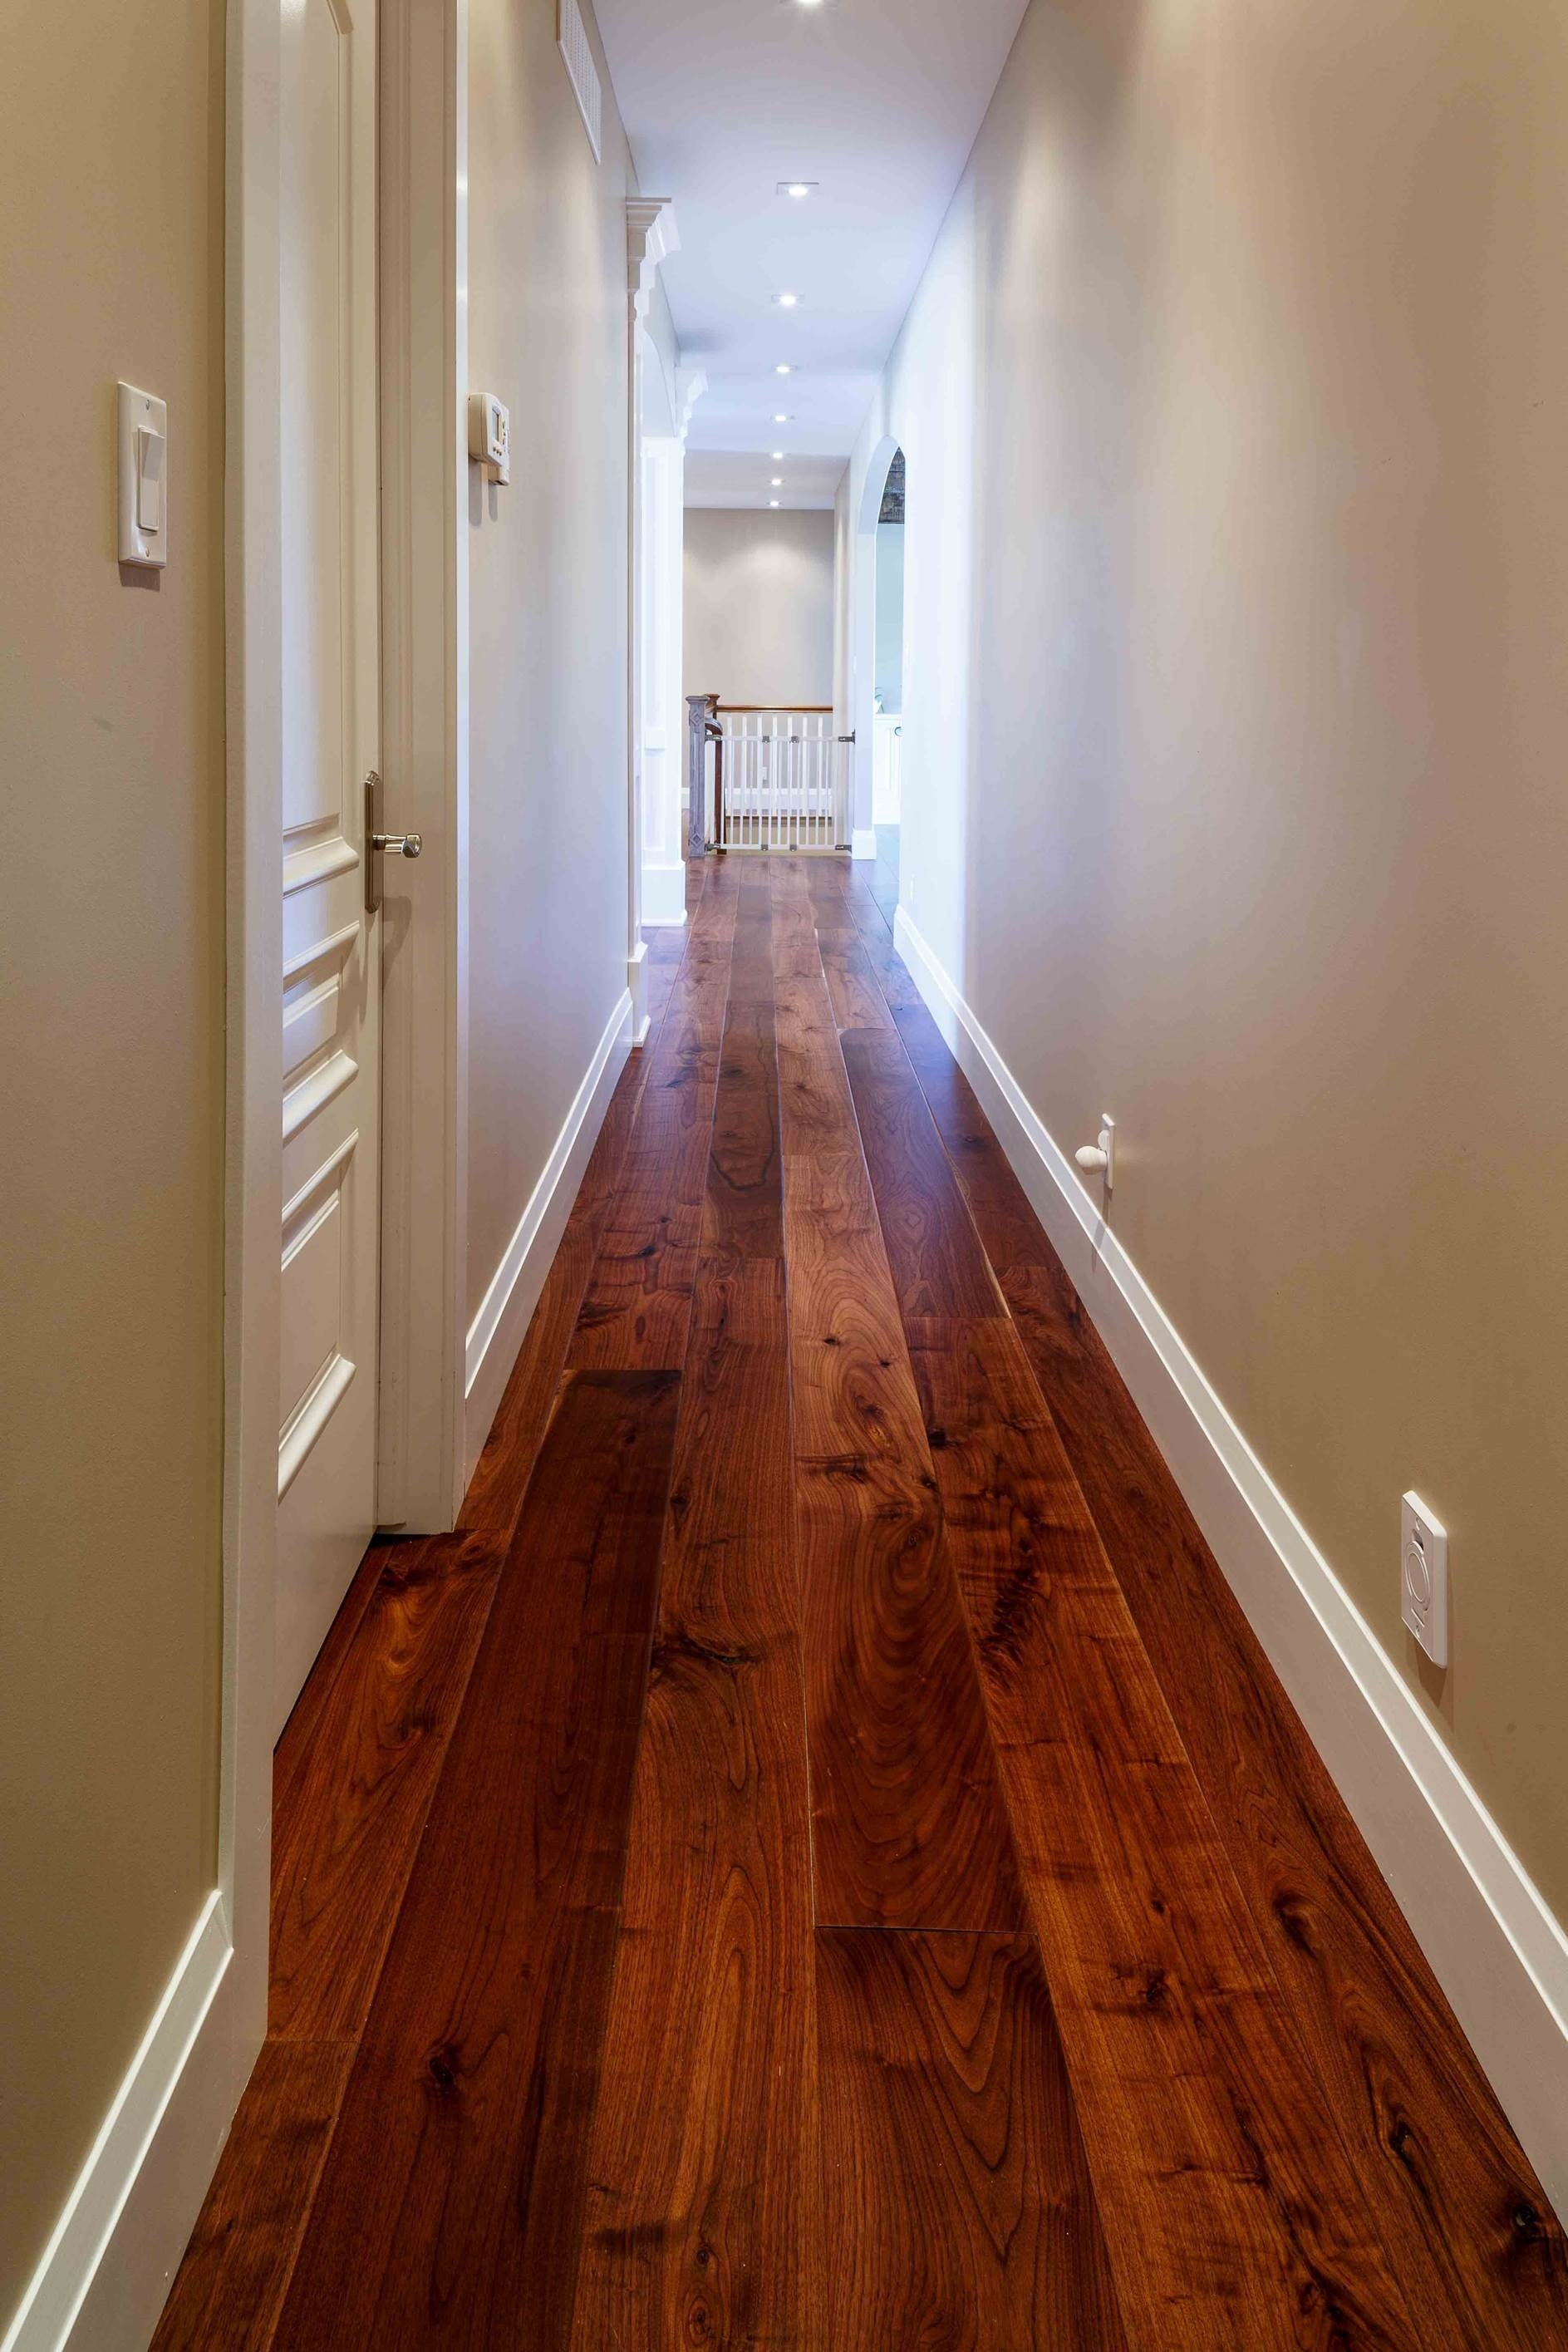 Walnut flooring and also acacia wood flooring and also garage flooring and also laminate wood flooring